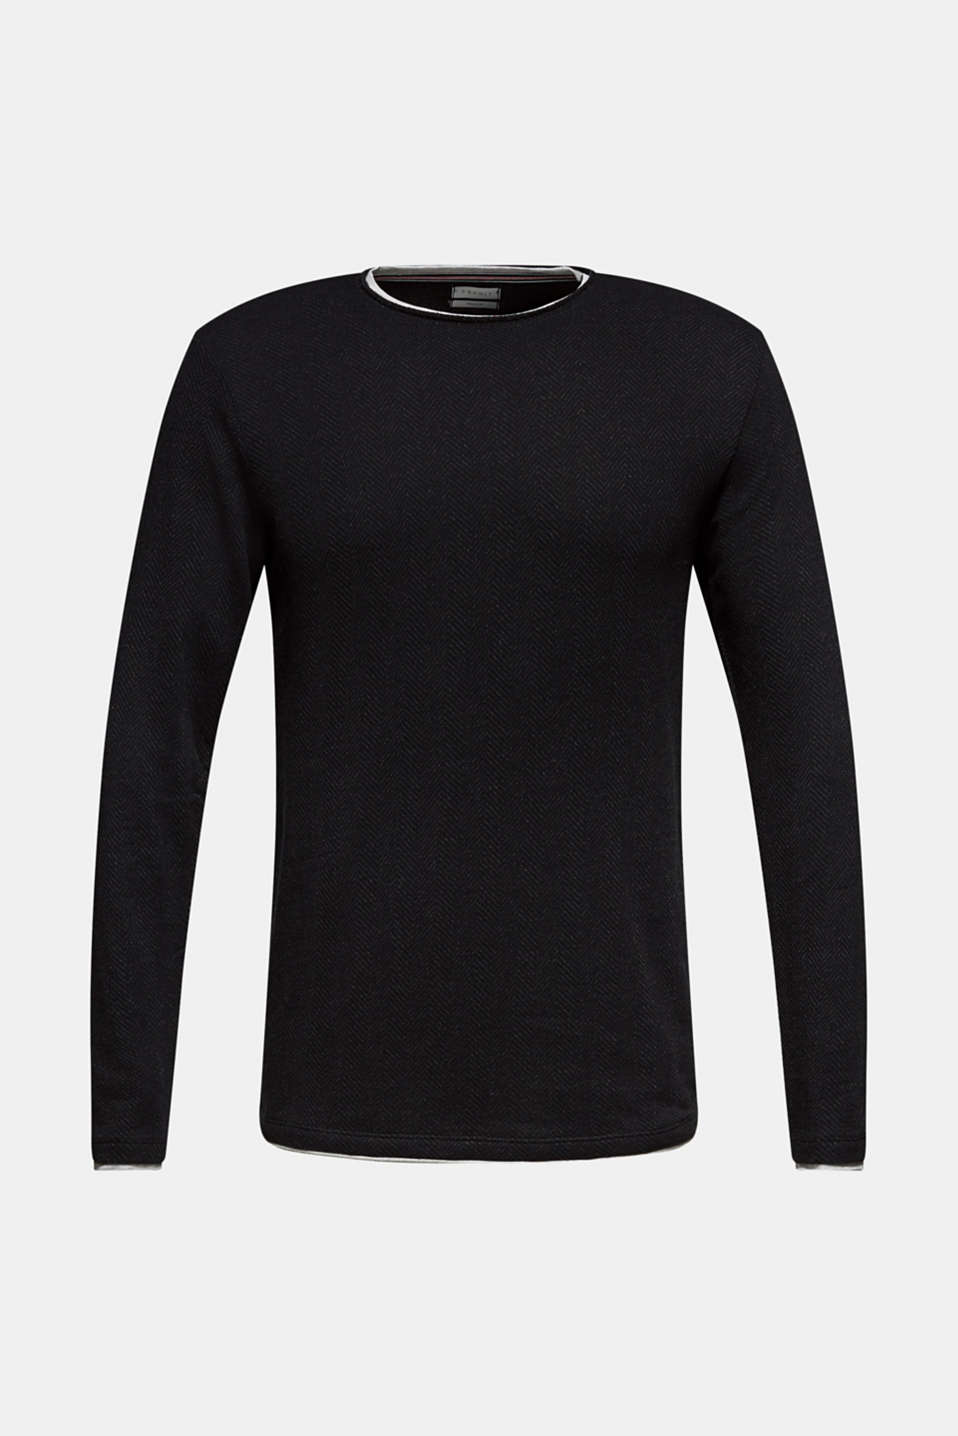 Long sleeve jersey top in a layered look, BLACK, detail image number 6